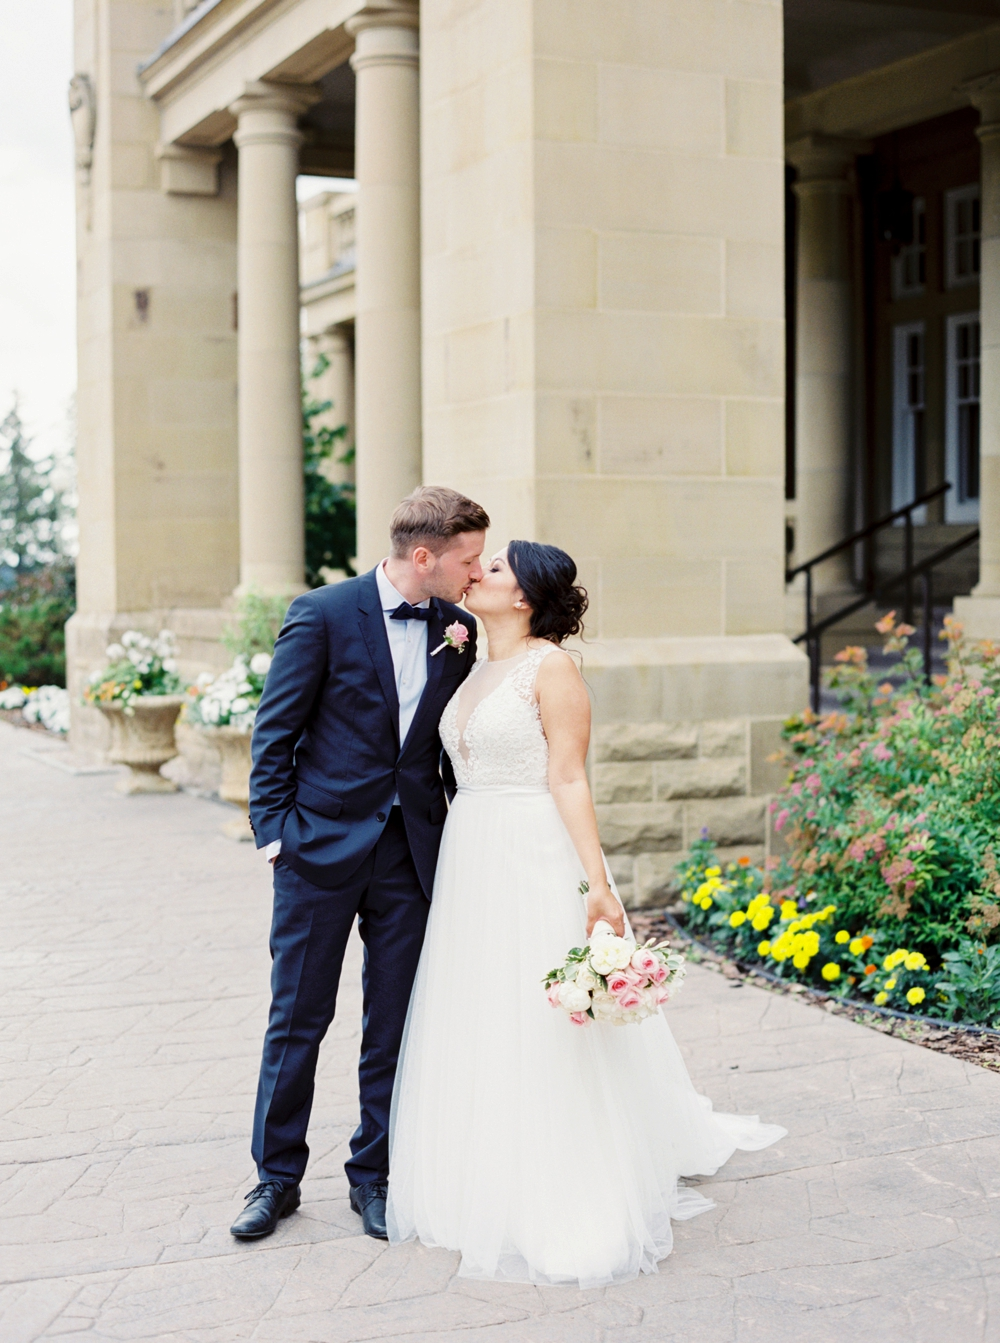 Calgary Wedding Photographers | Edmonton Vietnamese German Wedding | Watters wedding dress & multi colored asian dresses